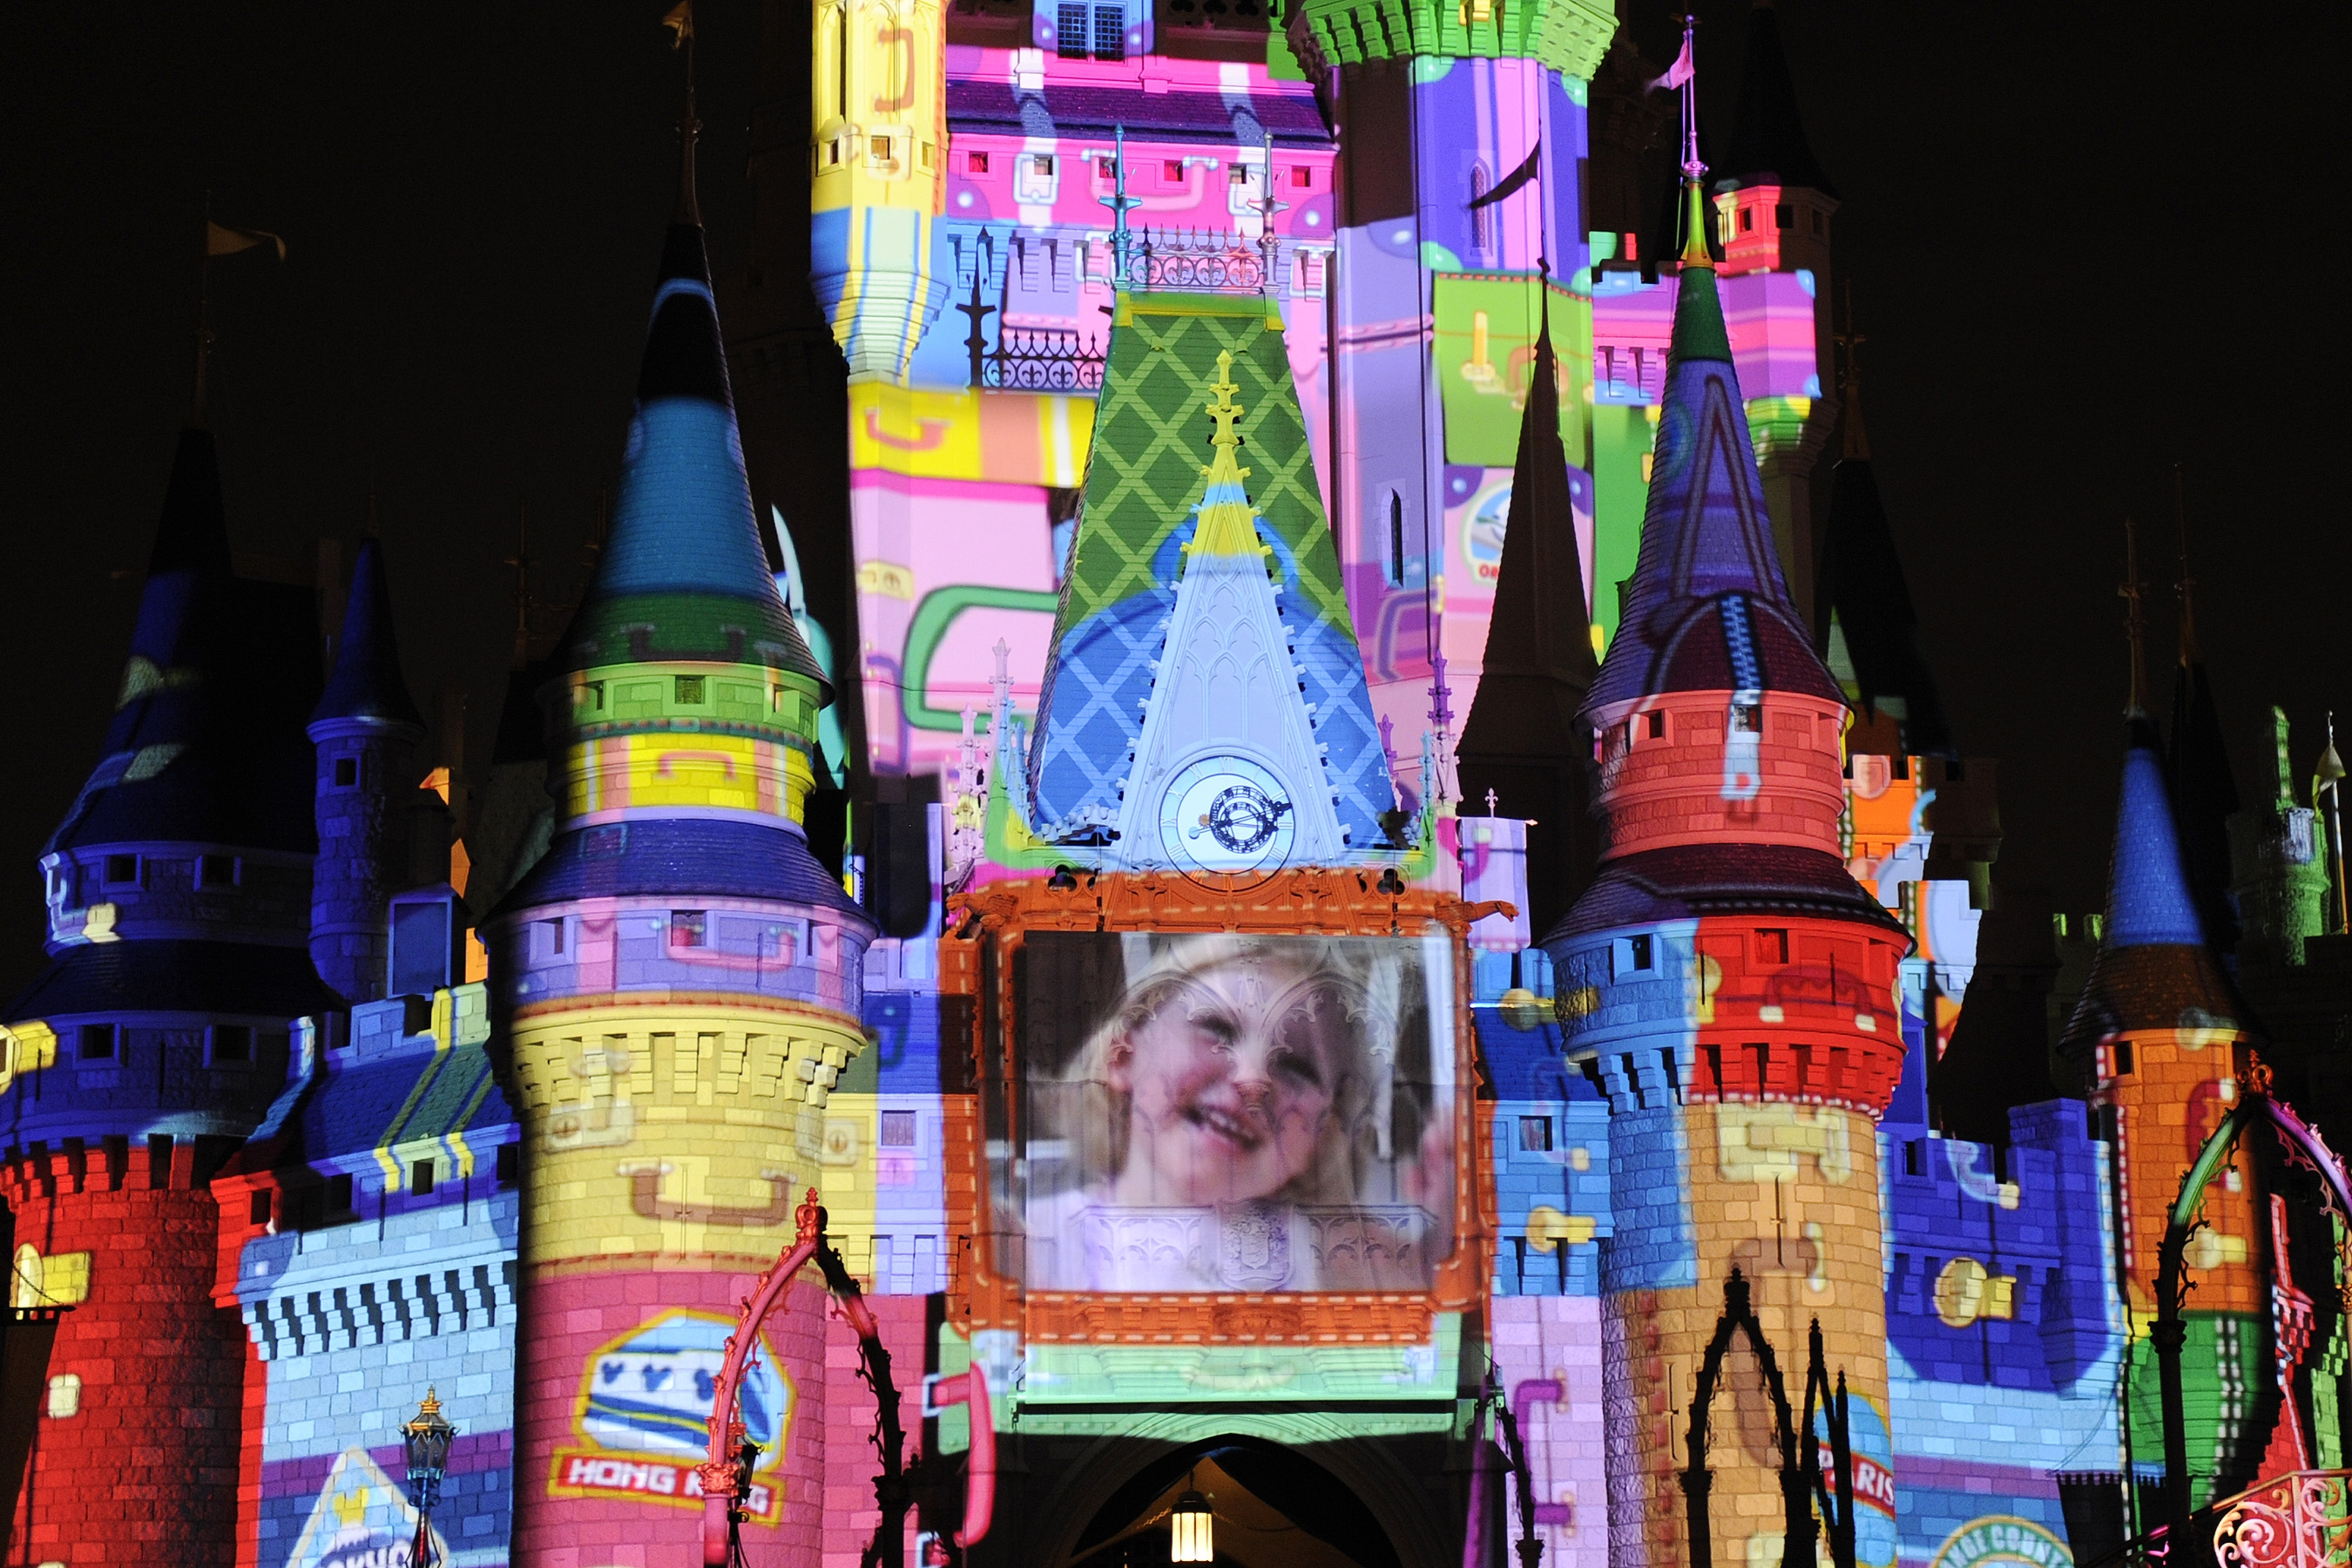 Let the Memories Begin – Walt Disney Parks and Resorts' Campaign